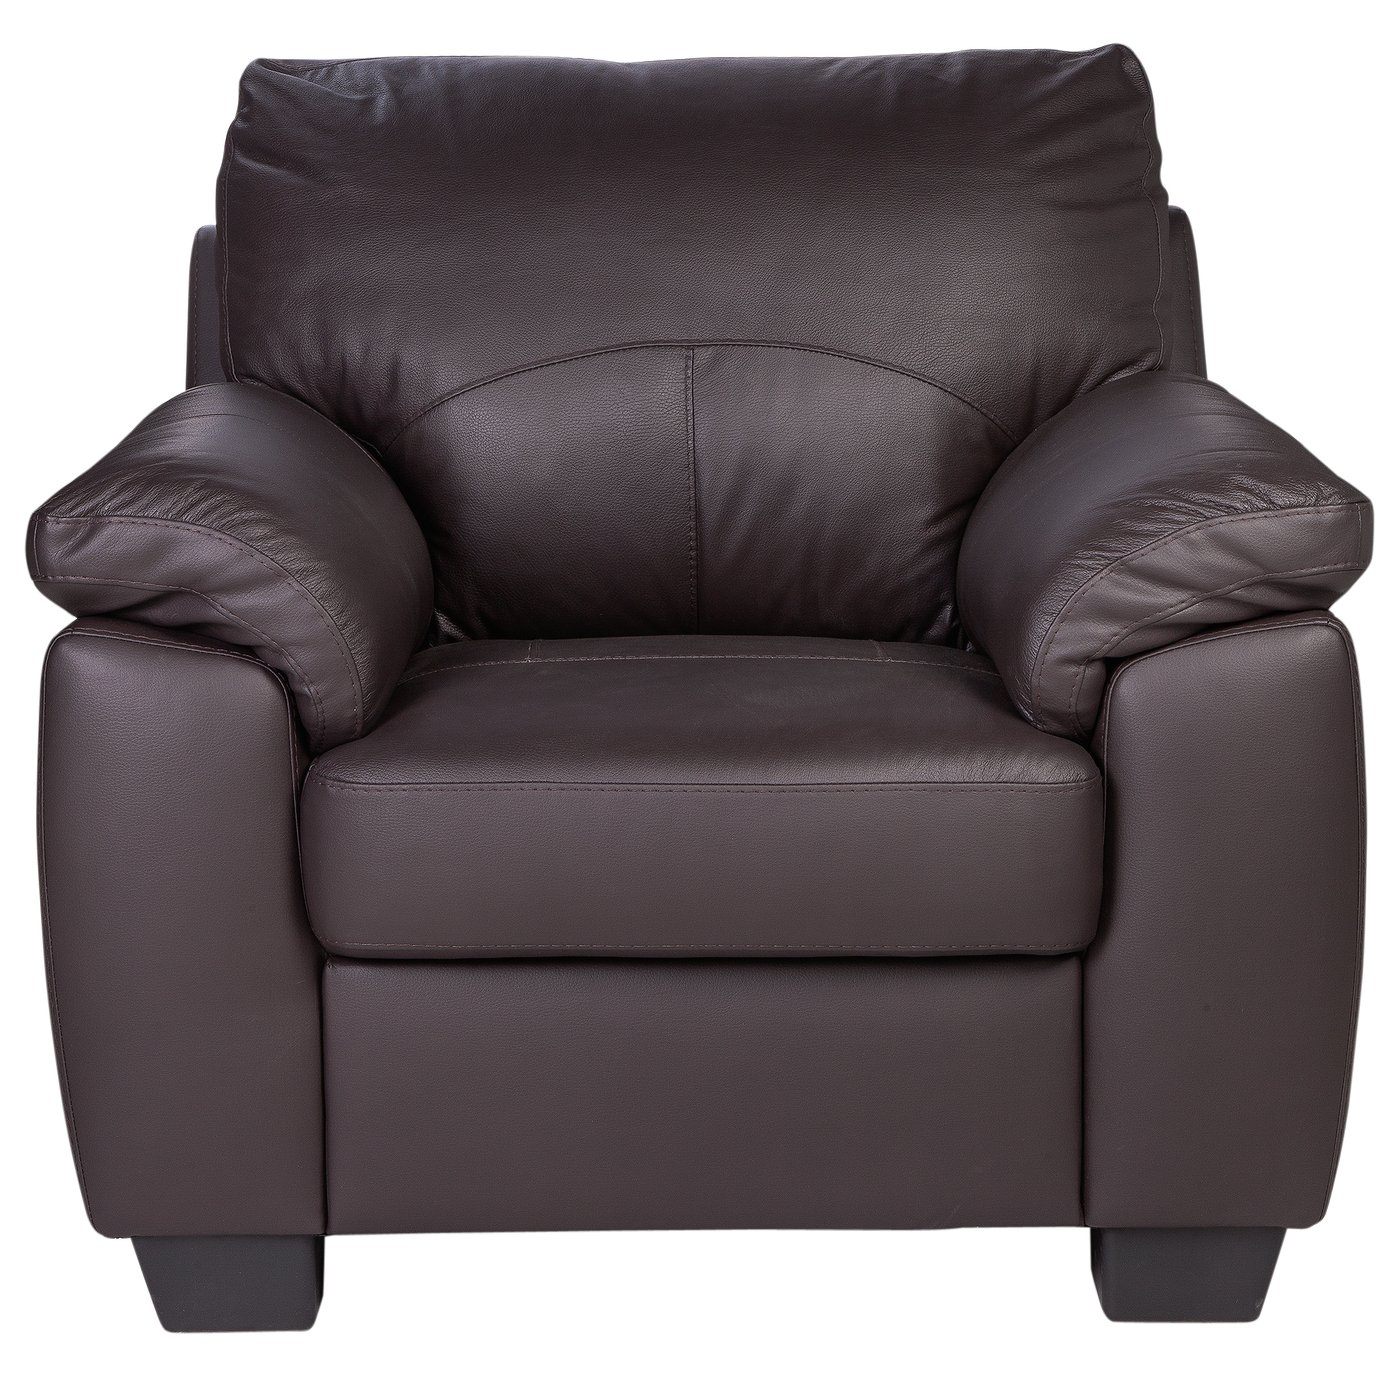 Argos Home Logan Leather Mix Armchair - Chocolate